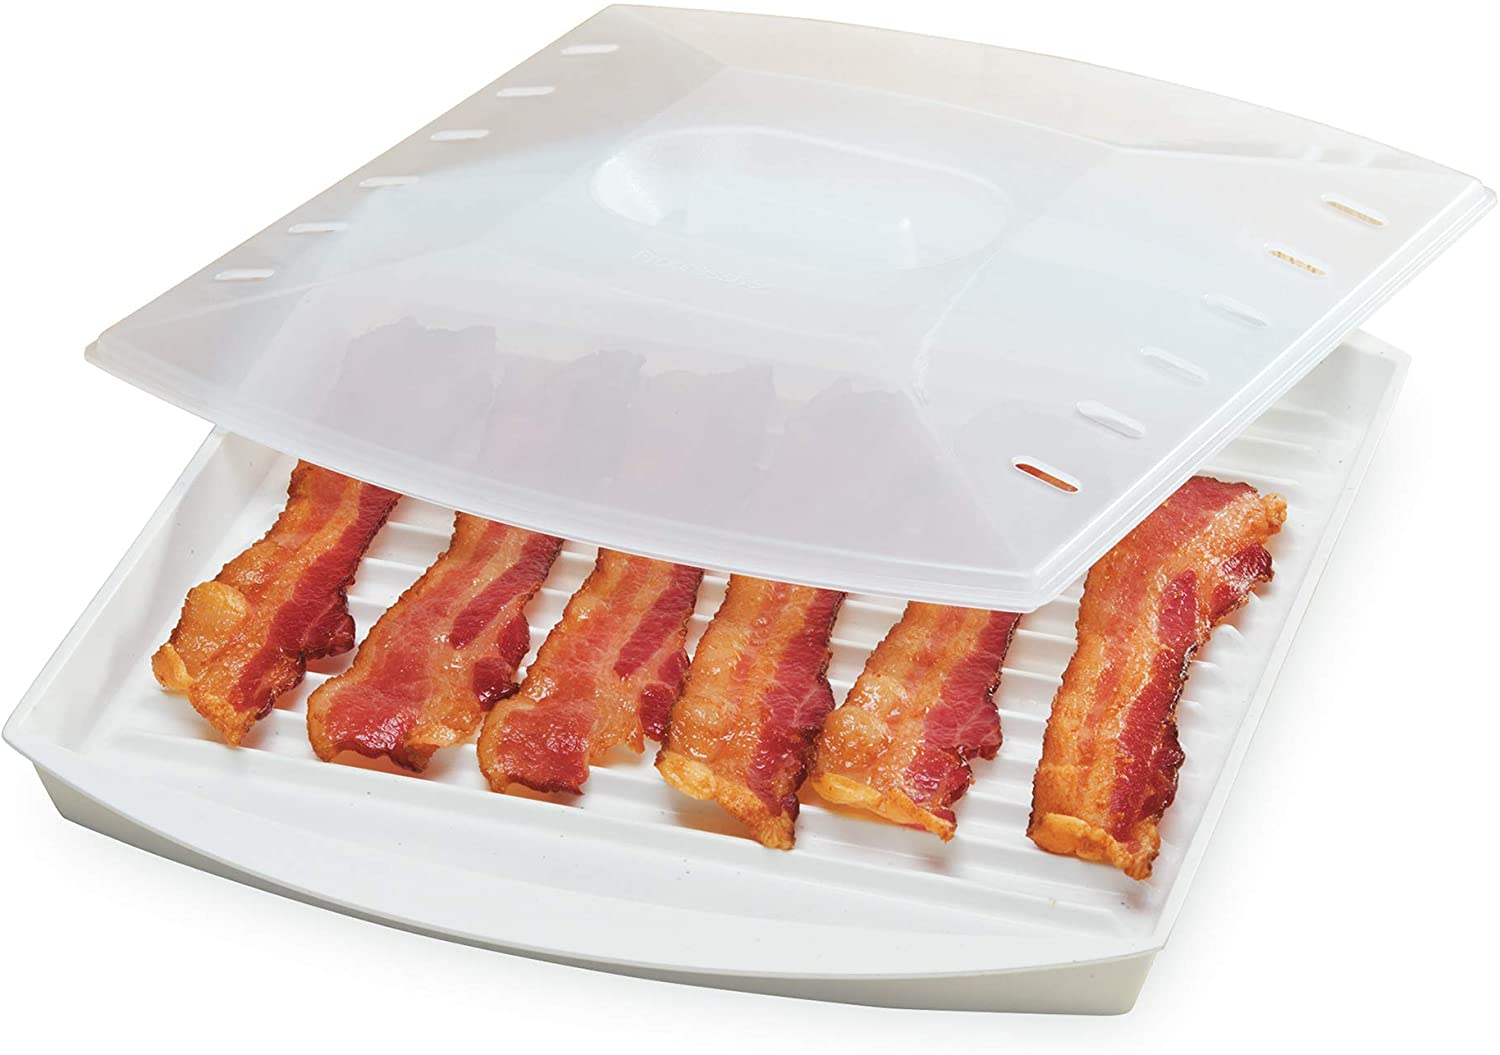 PrepSolutions Microwavable Bacon Grill